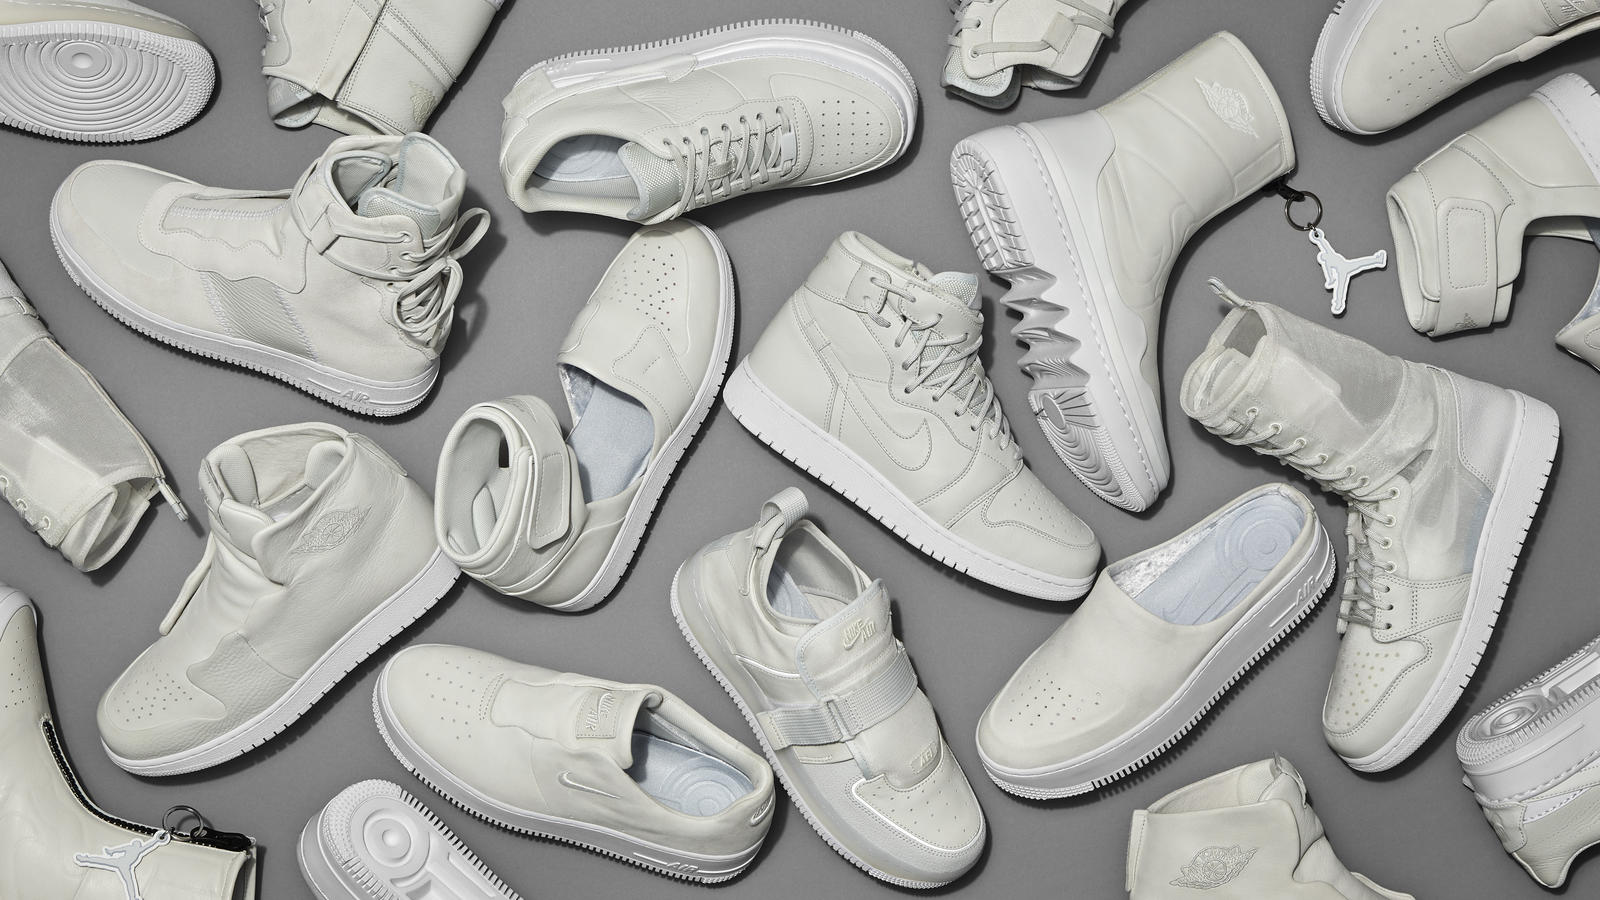 b56e5268111c7d The Making of The 1 Reimagined - Nike News